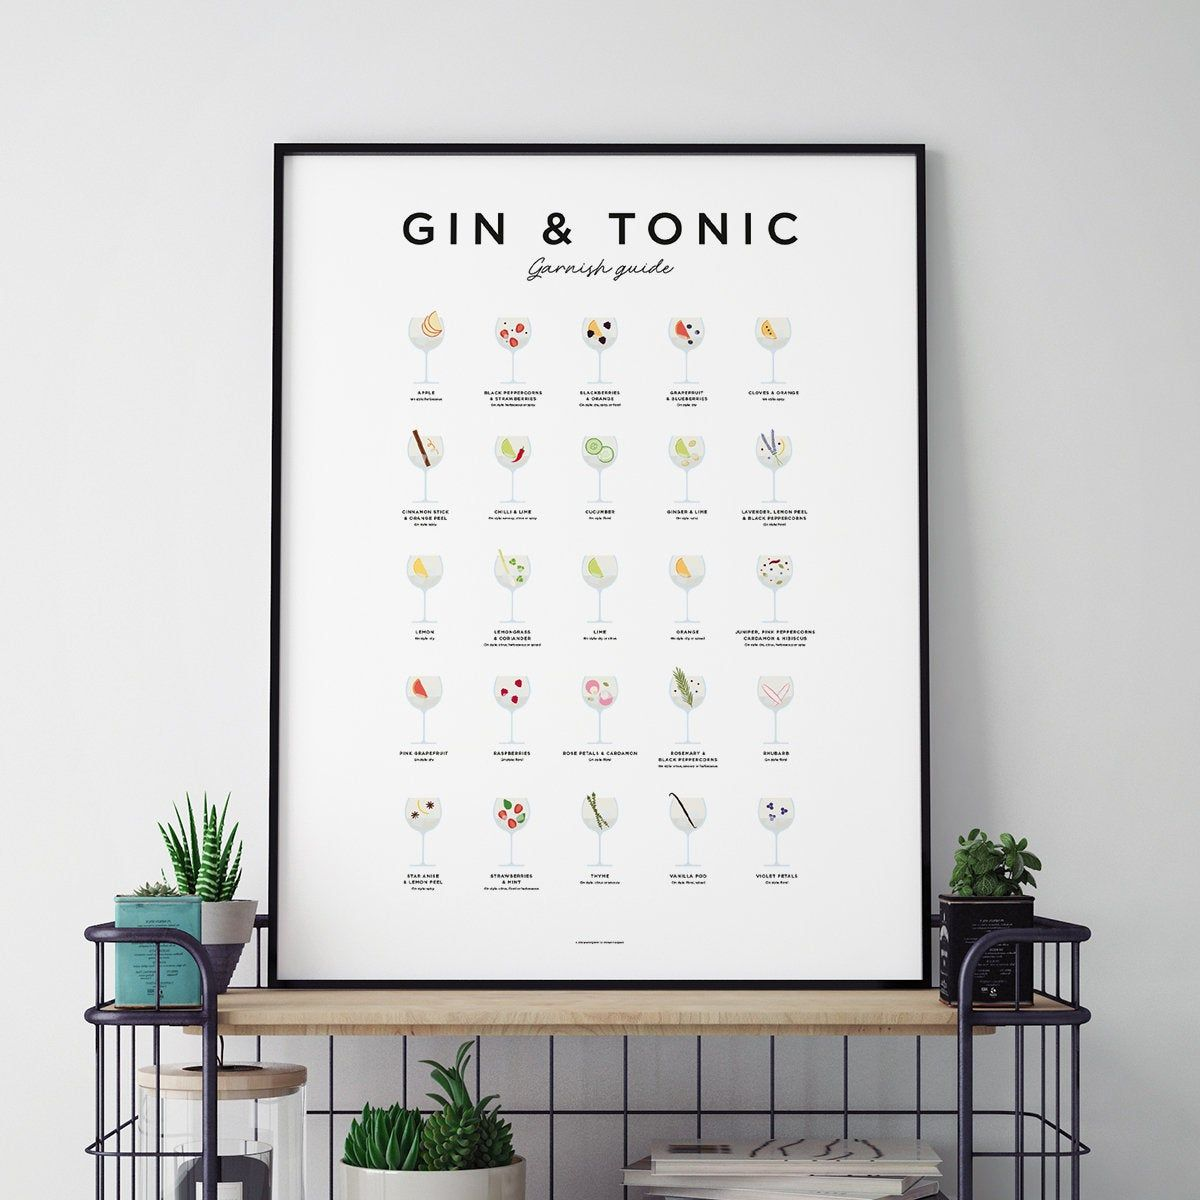 15 gifts every gin lover will appreciate this Christmas